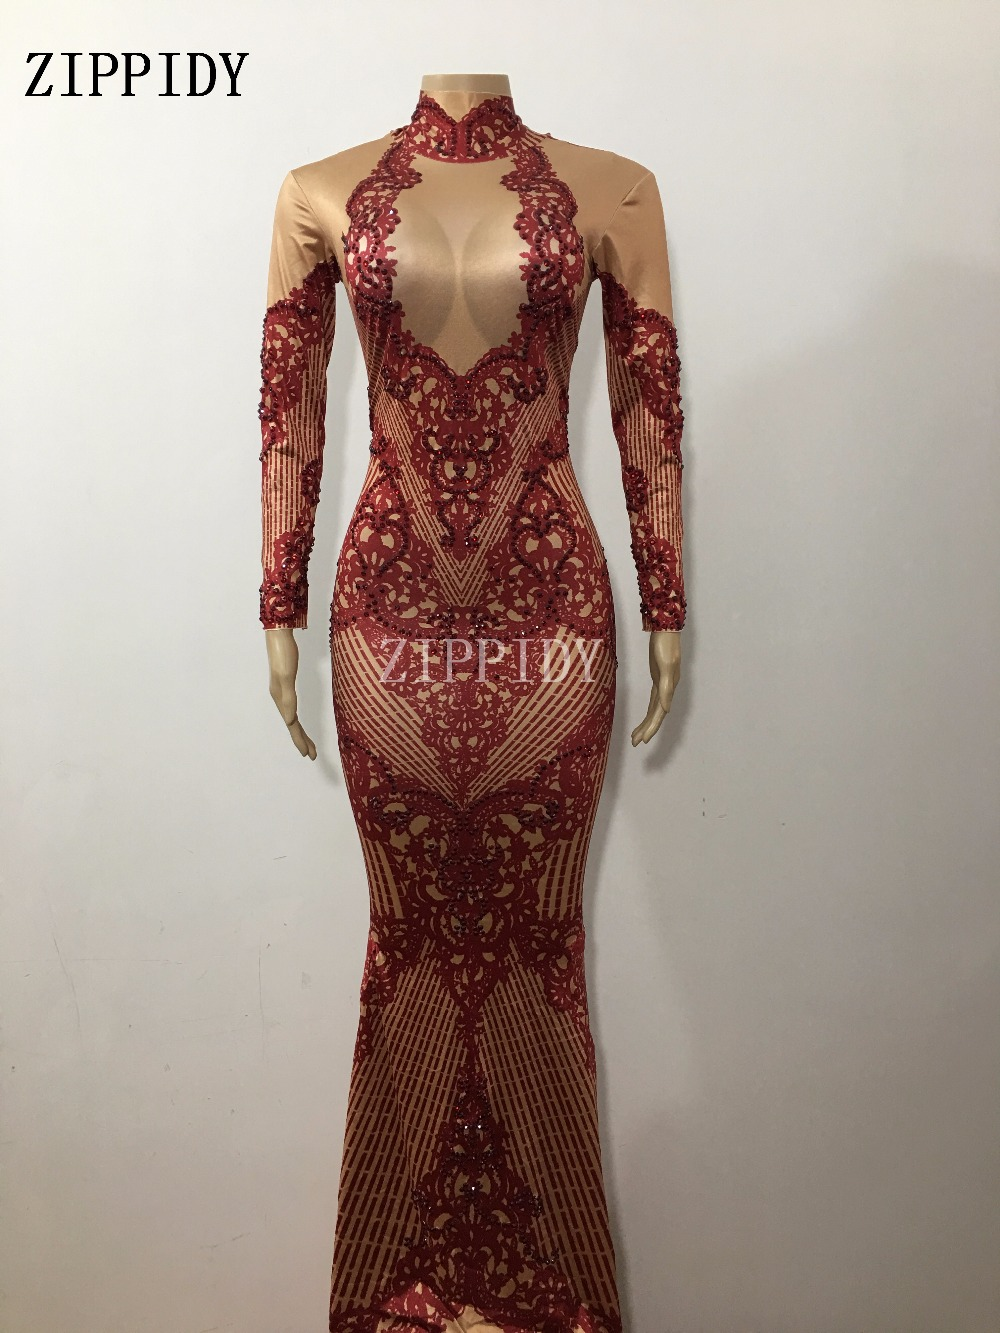 Fashion Sparkly Crystals Dress 3 Colors Evening Printed Costume Celebrate  Rhinestones Dress Birthday Long Tail Dresses-in Dresses from Women's Clothing    3